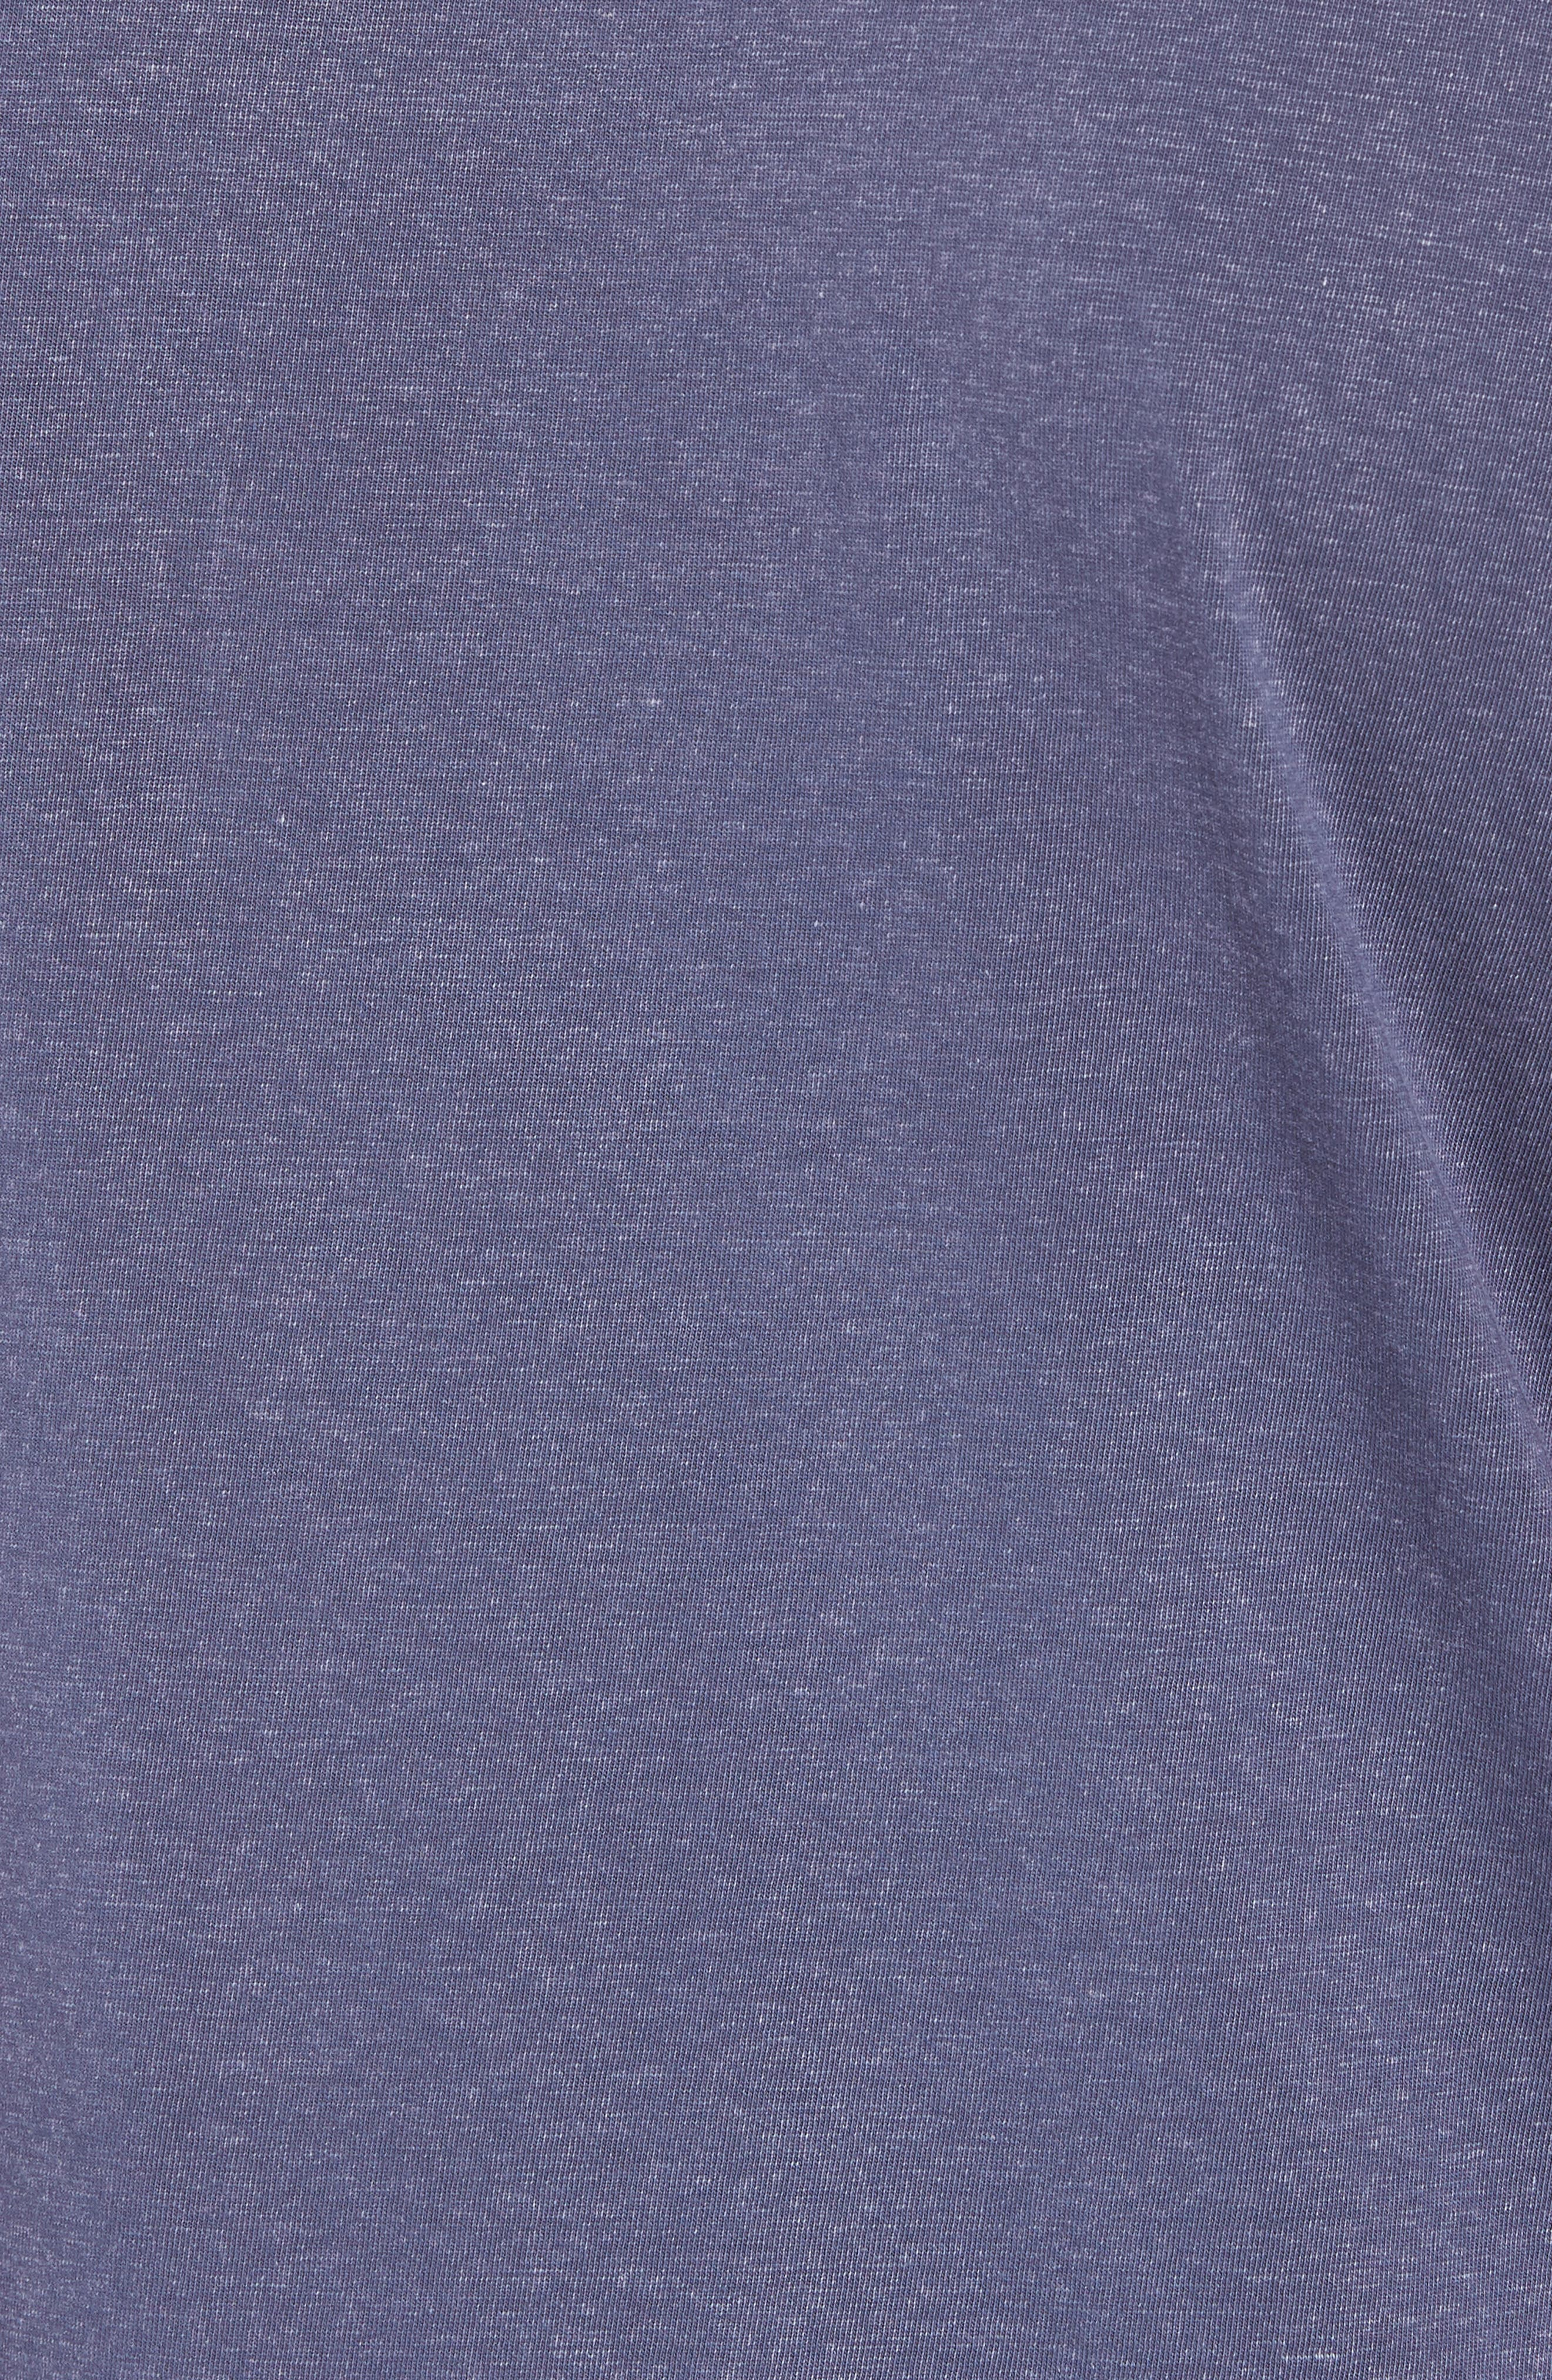 Regular Fit Polo,                             Alternate thumbnail 5, color,                             Dry Lavender